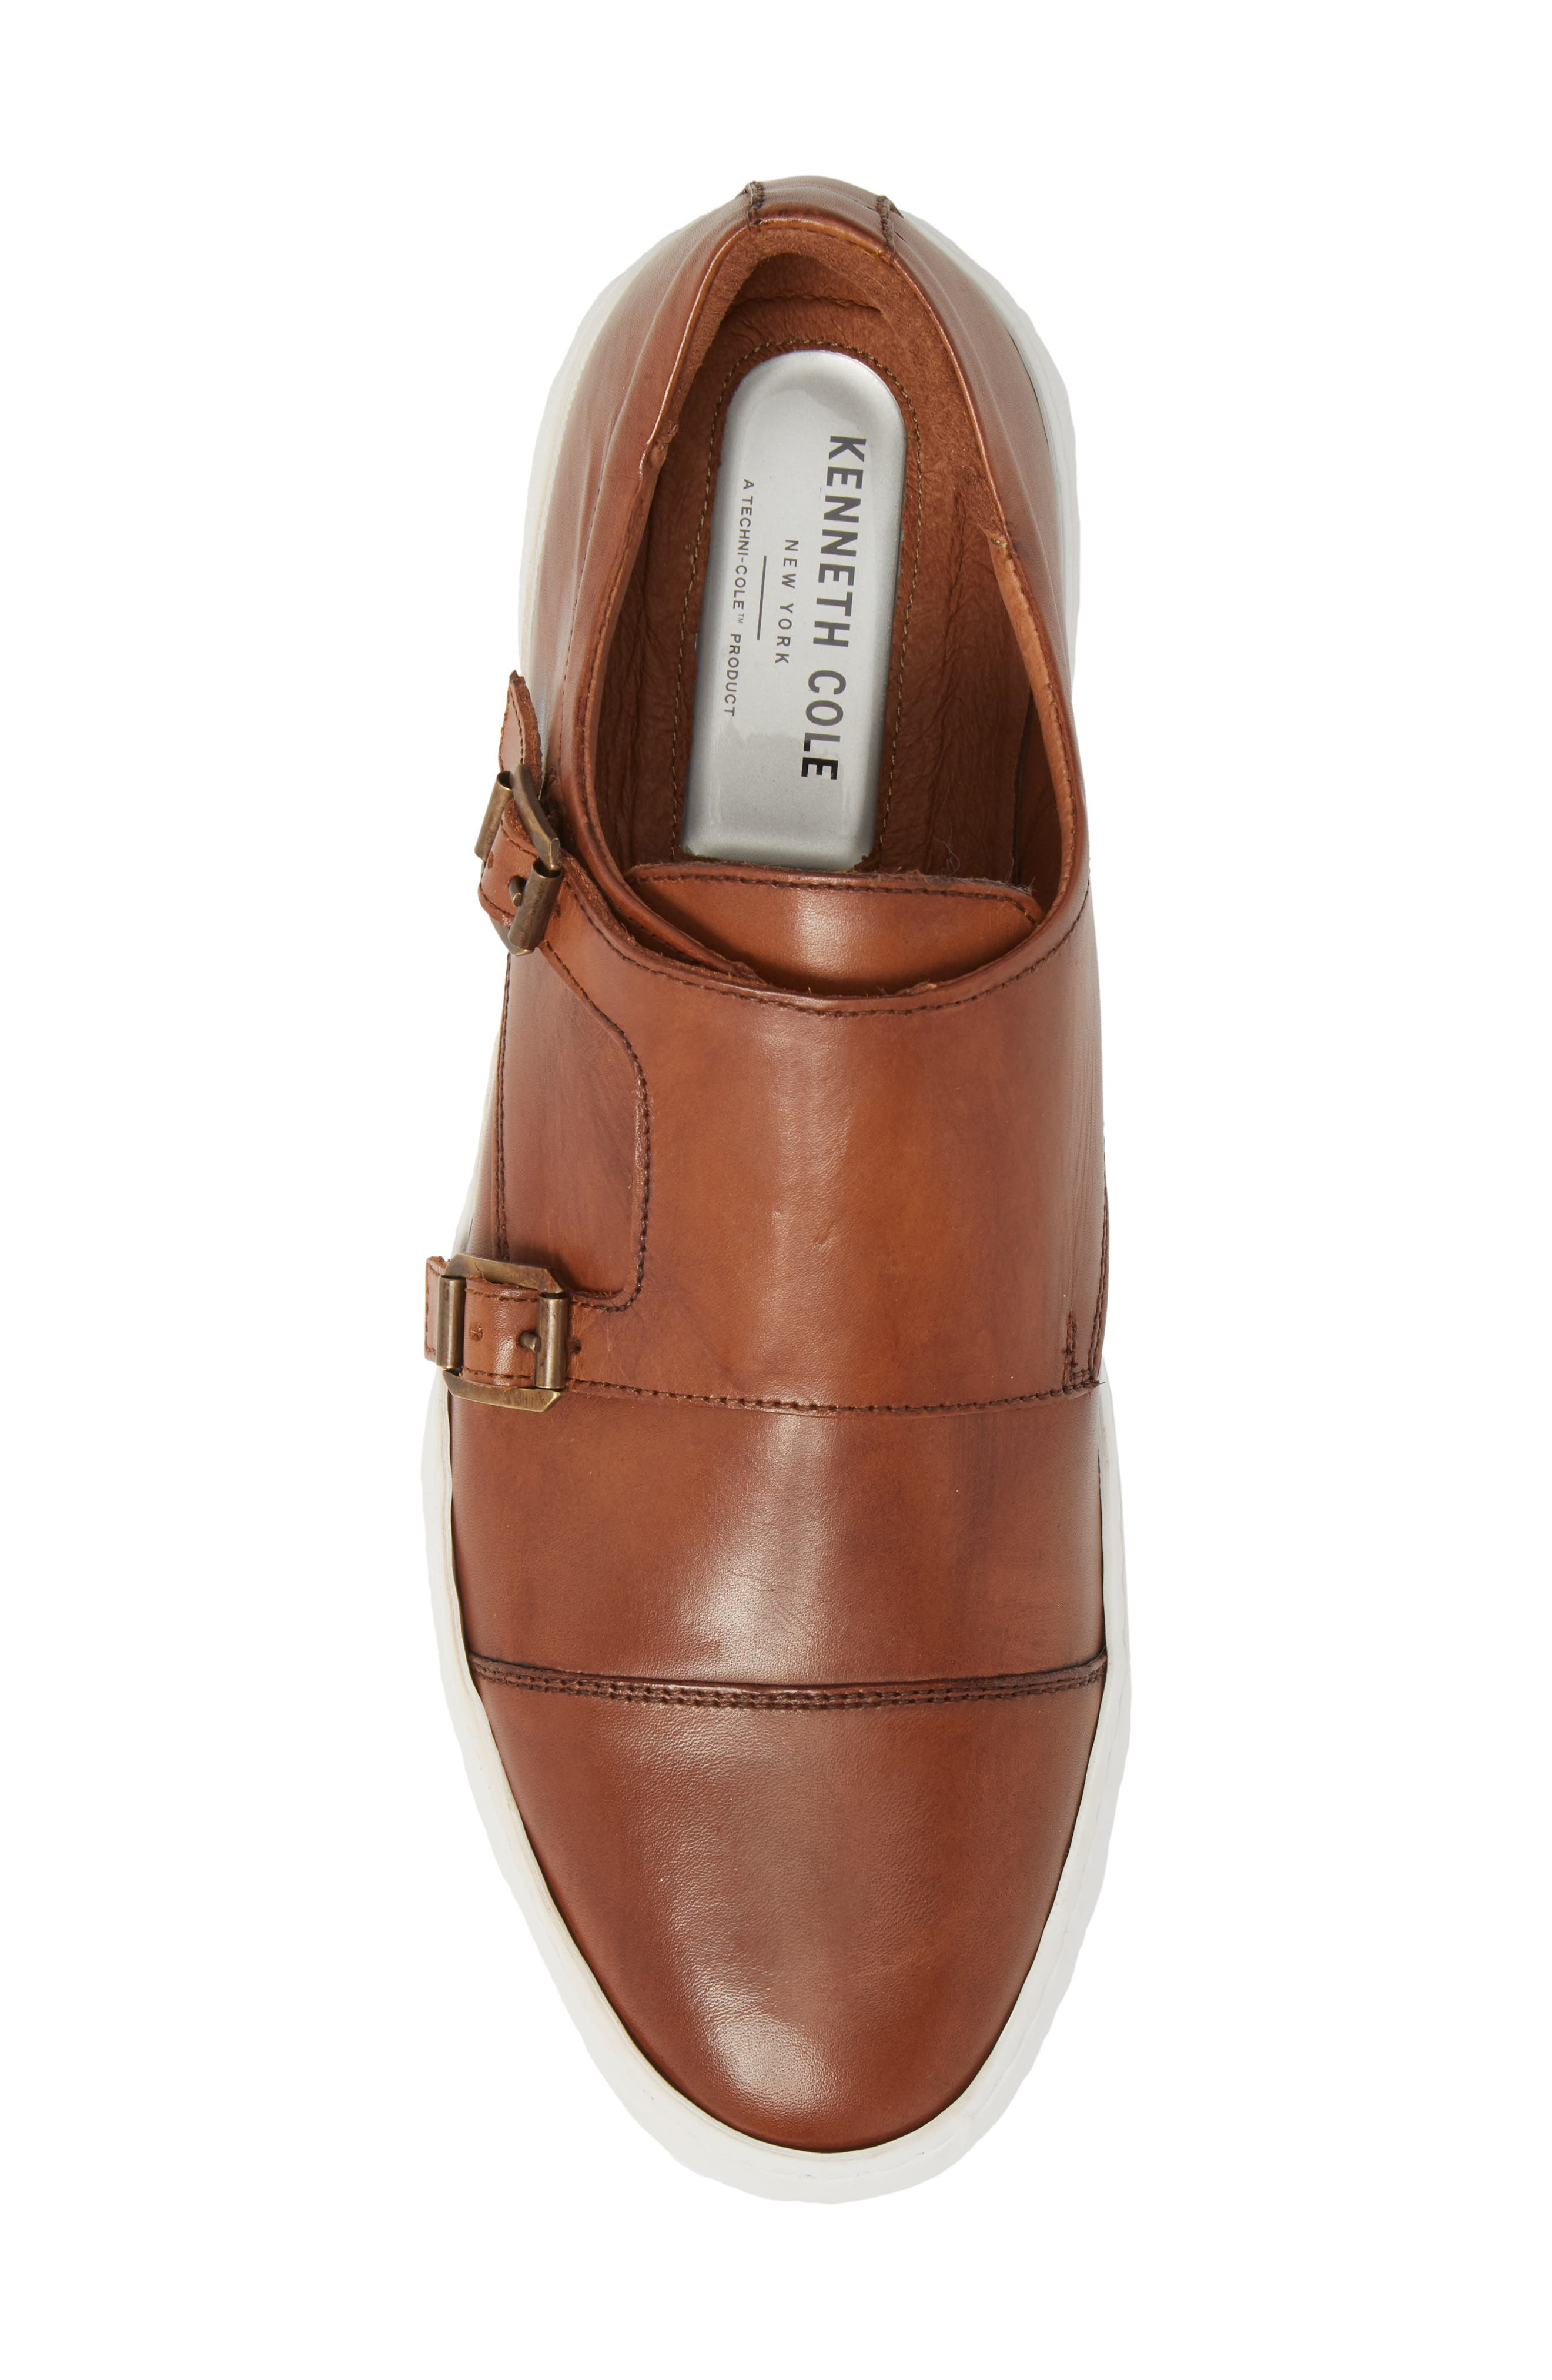 KENNETH COLE NEW YORK, Whyle Double Strap Monk Sneaker, Alternate thumbnail 5, color, COGNAC LEATHER